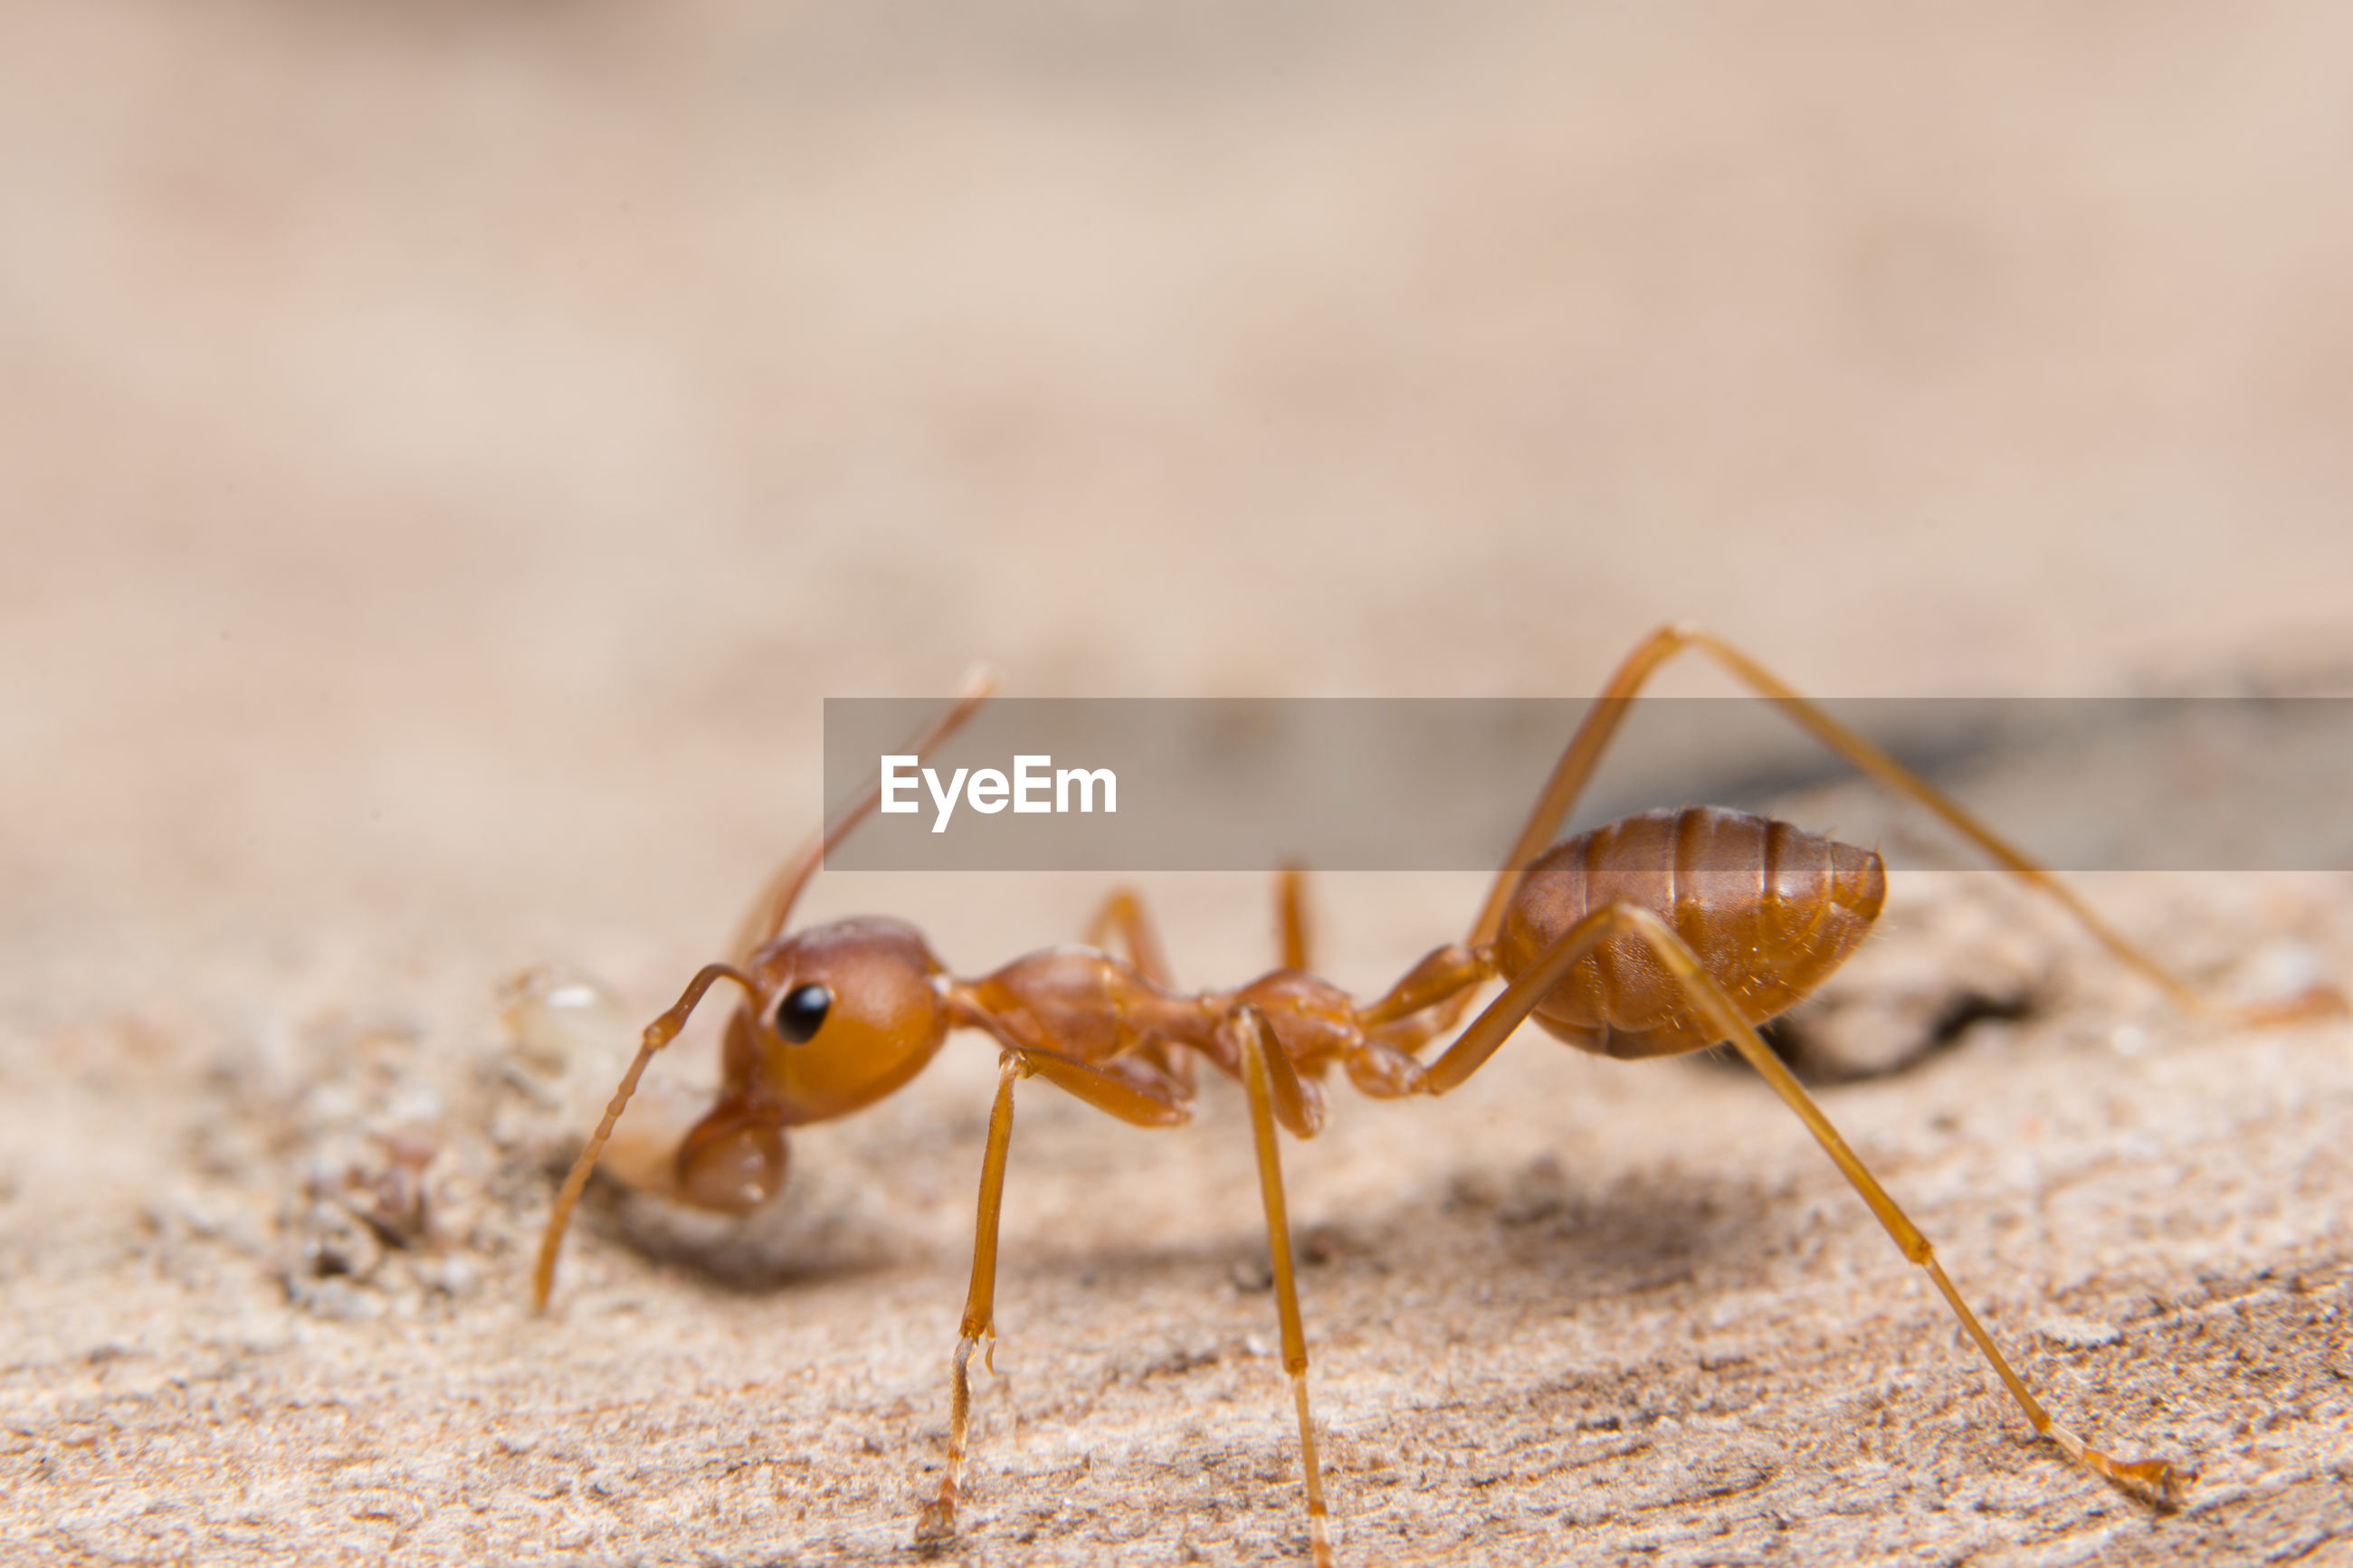 Close-up of ant on wood